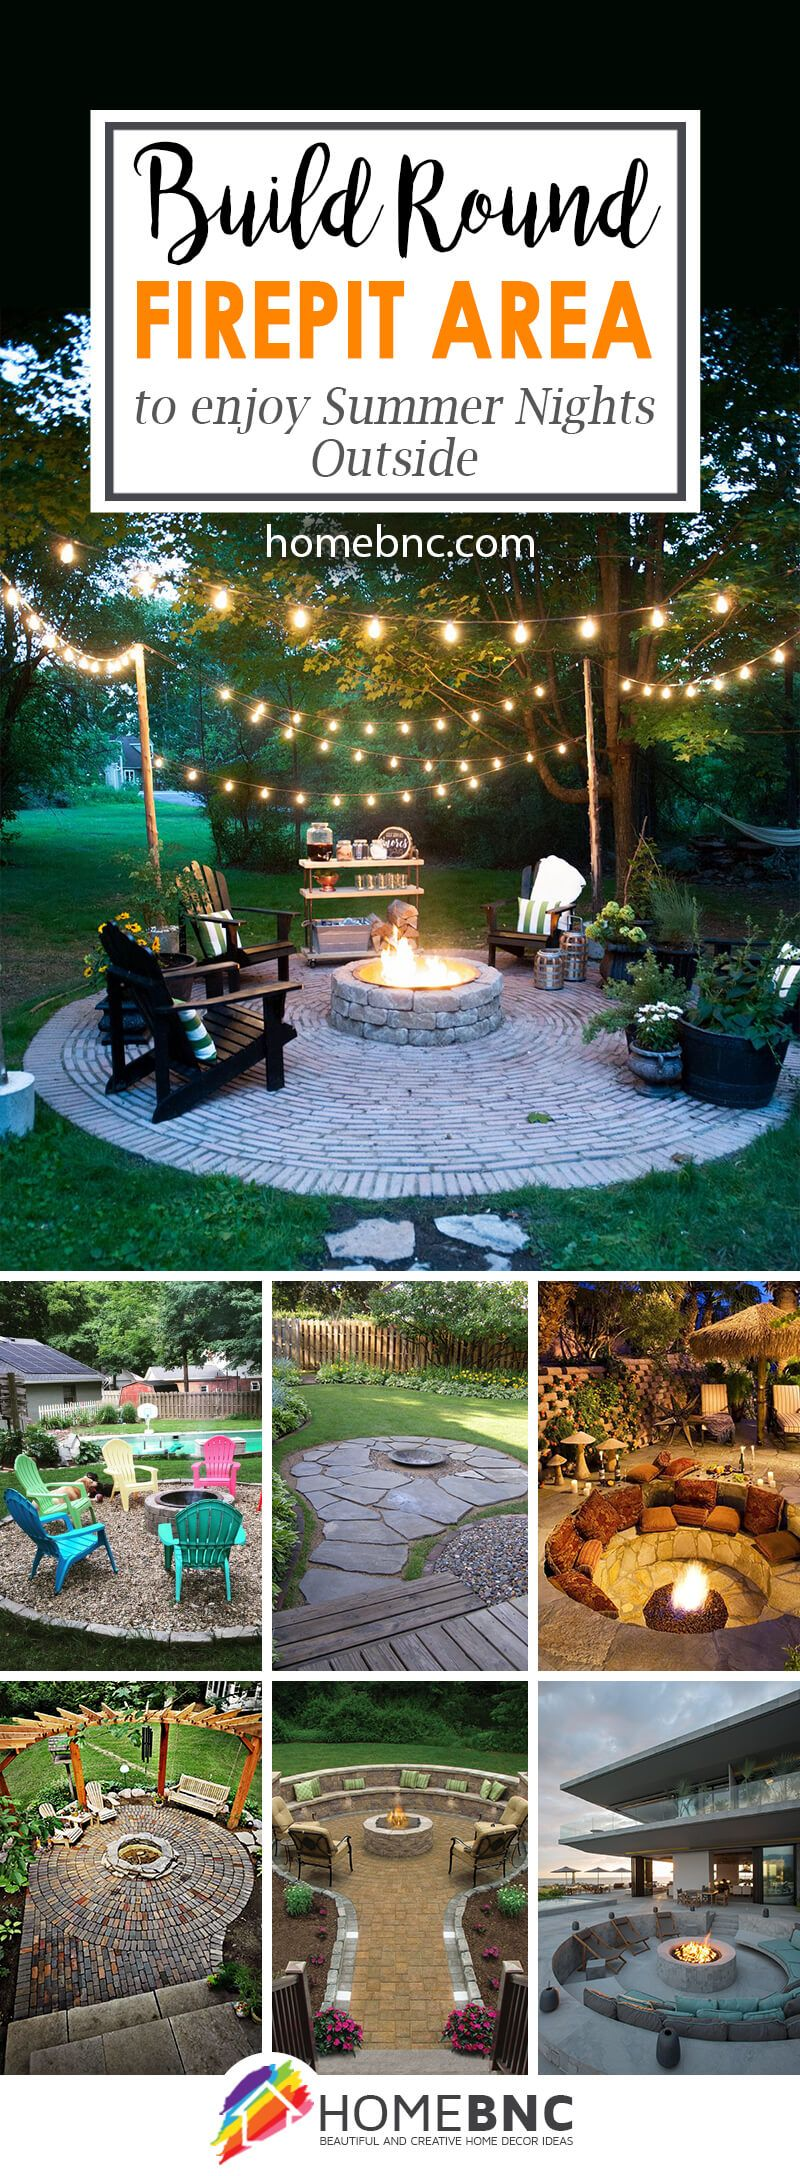 28 round firepit area ideas to enjoy summer nights outside